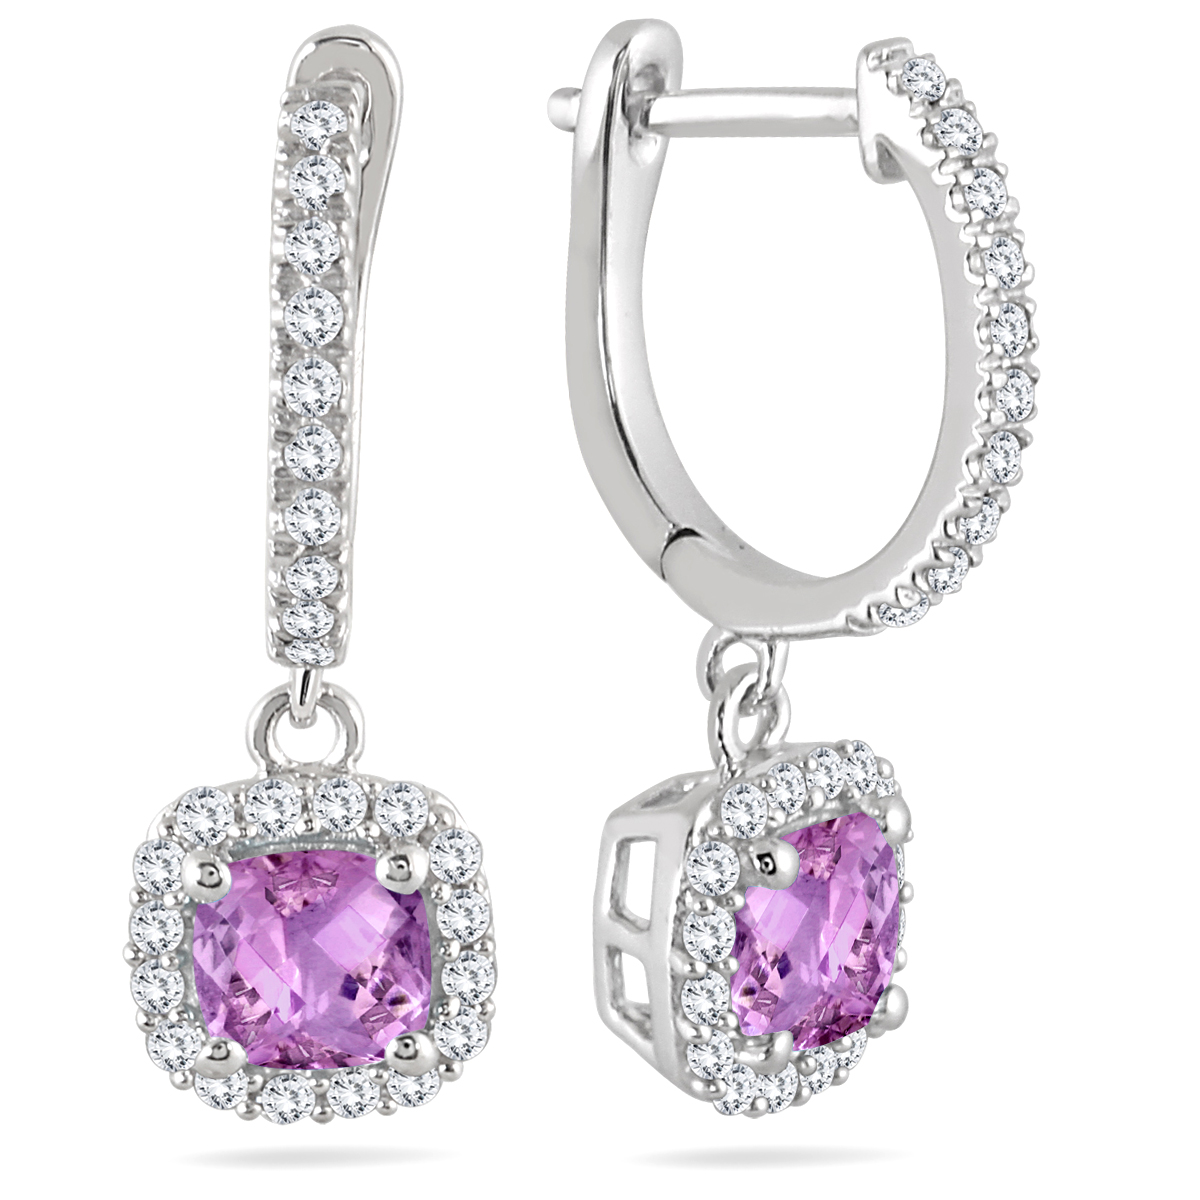 1 Carat Amethyst and Diamond Halo Dangle Earrings in 10K White Gold